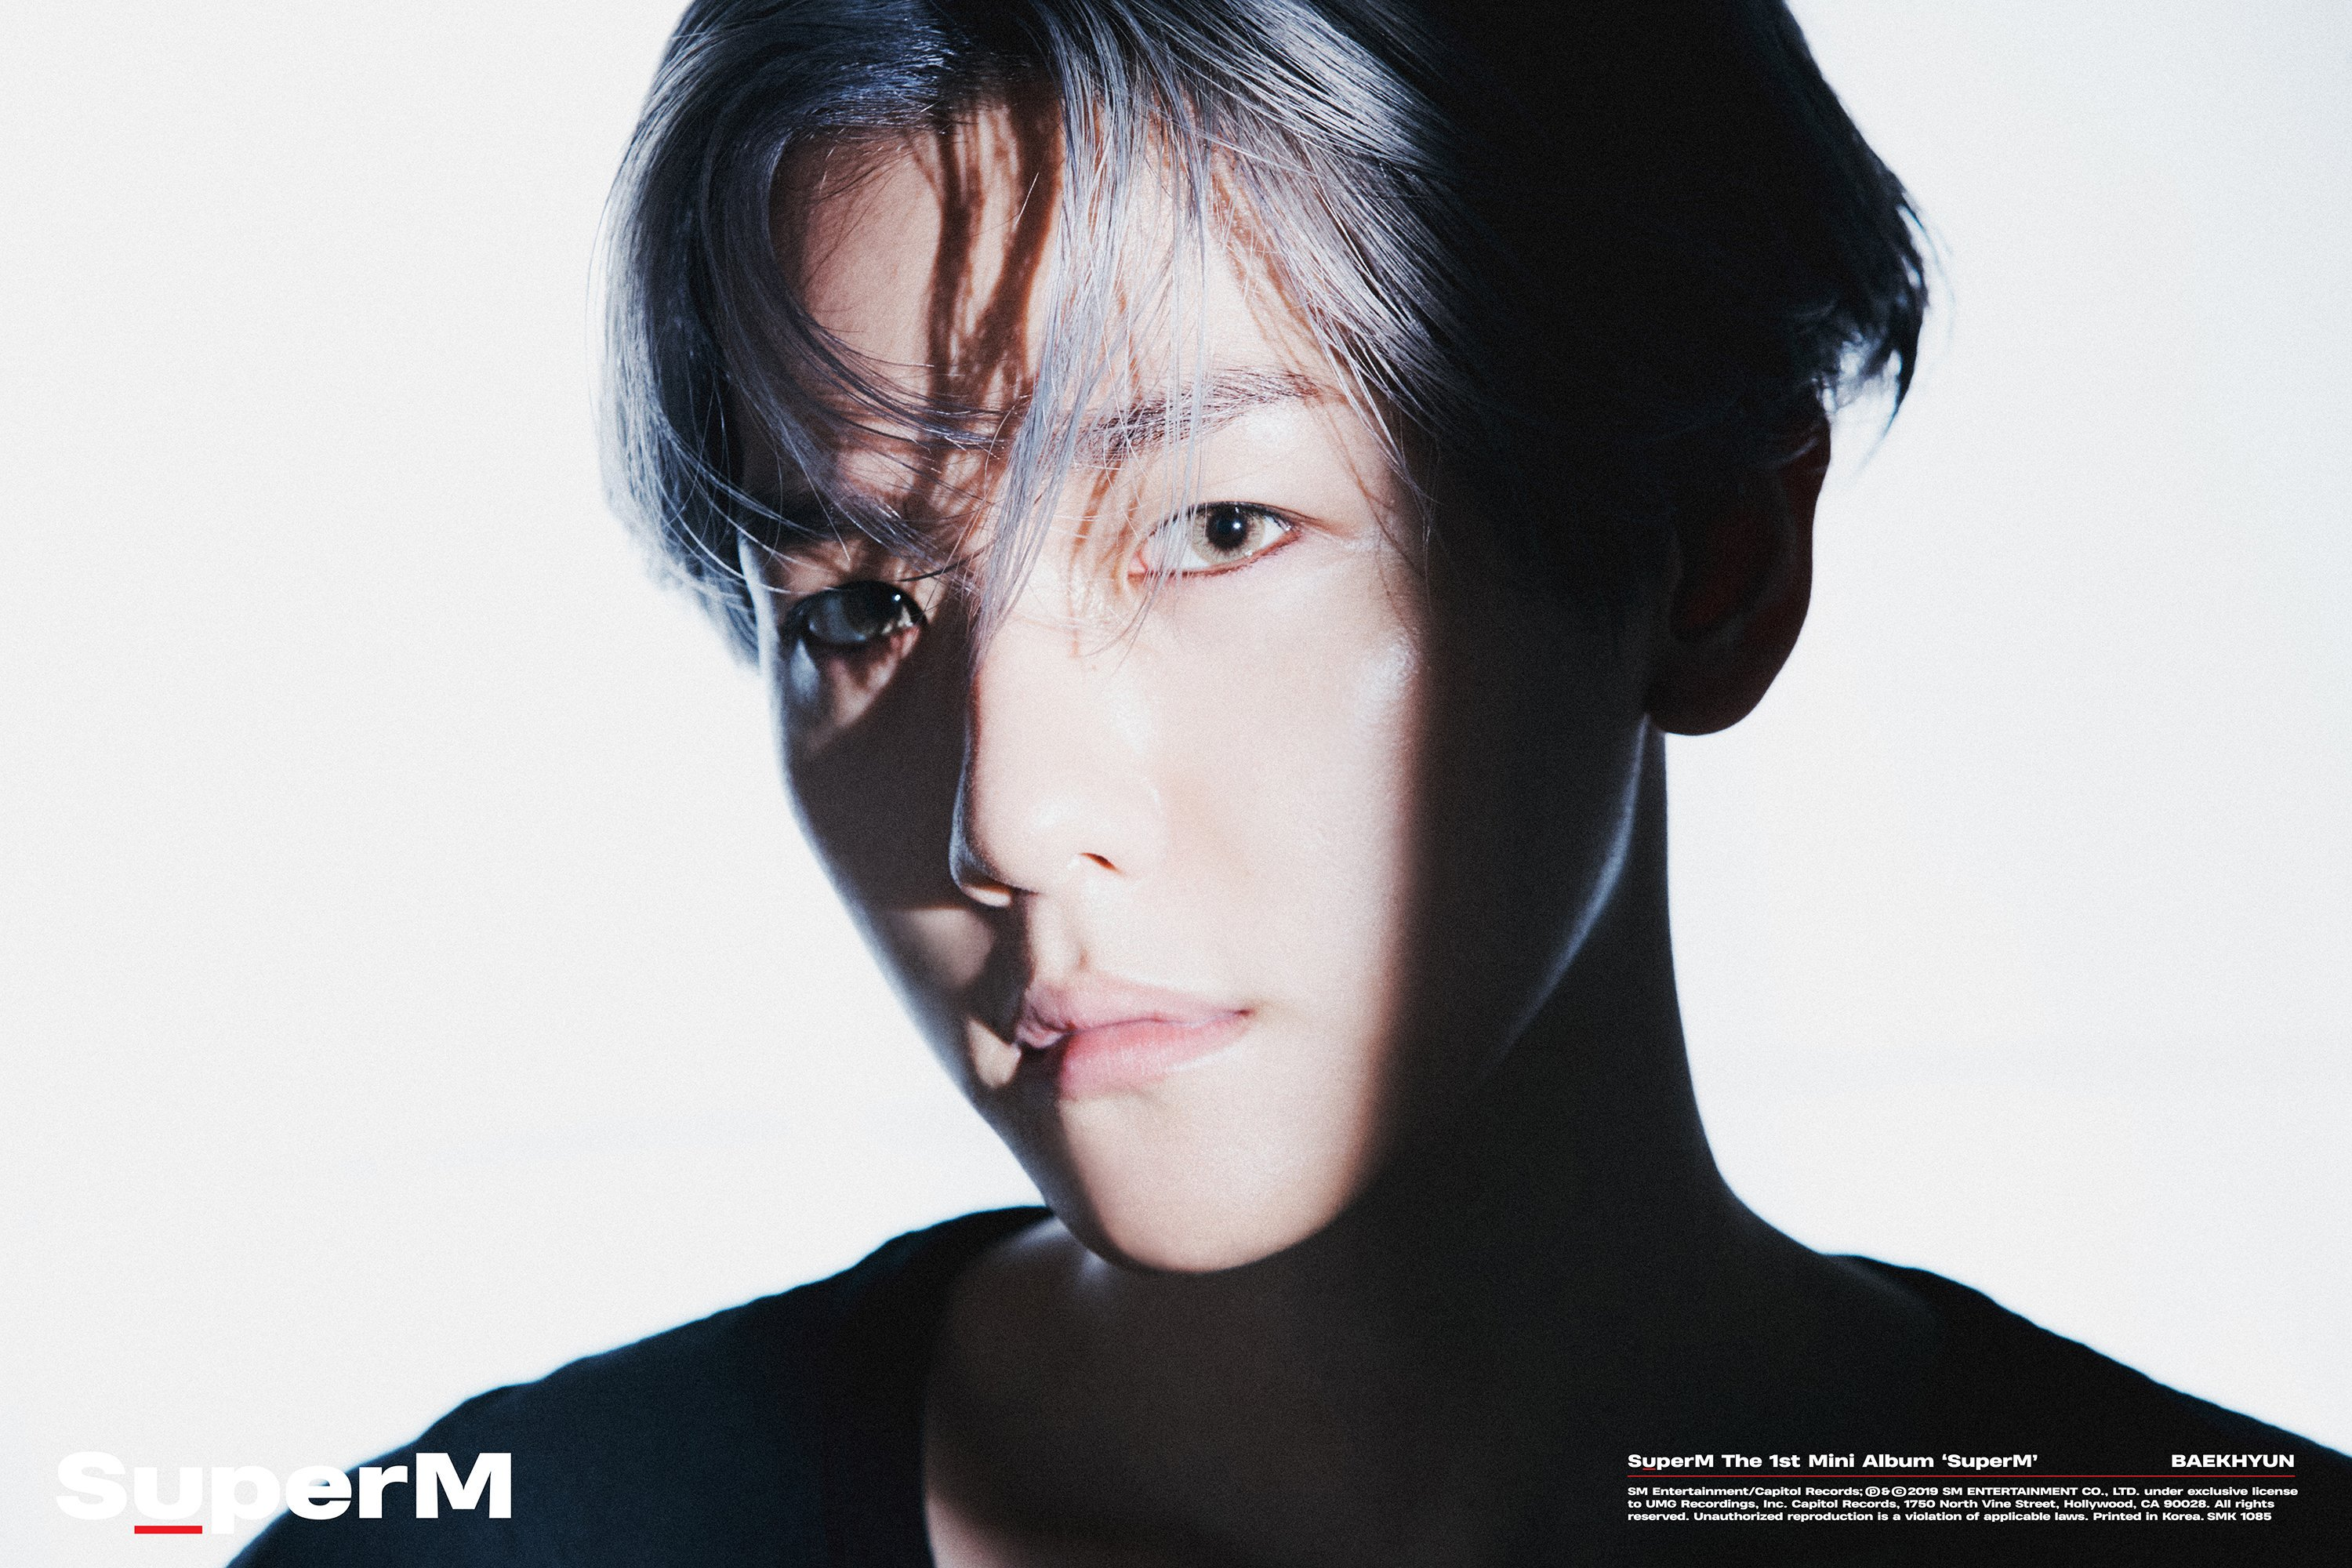 A portrait shot of Baekhyun, SuperM's leader, with his face only partially lit.